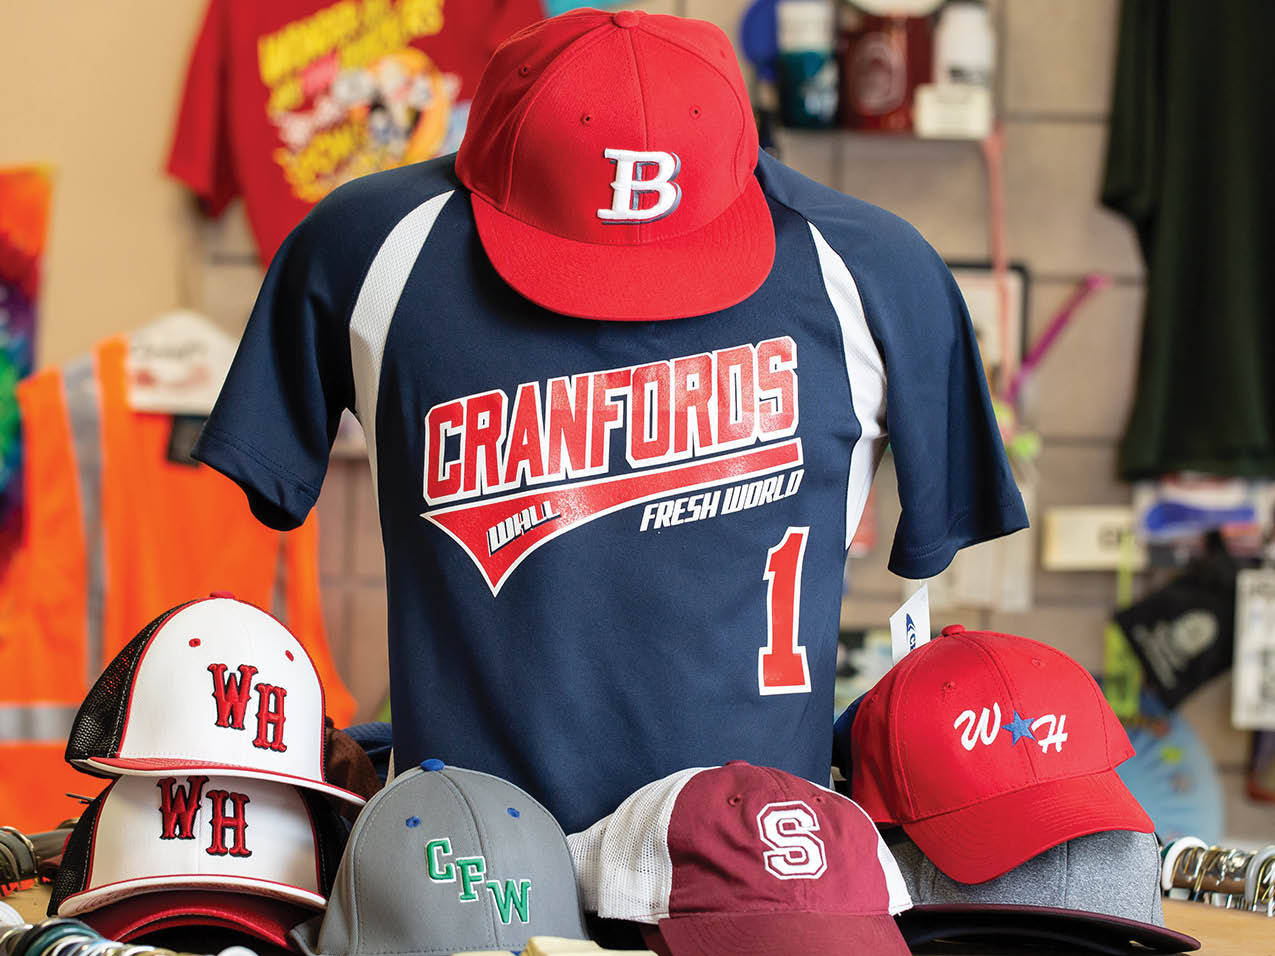 Hey batter, batter! - Let us help get your team to the big leagues. Arkansas Printing has everything your player needs, from embroidered hats to custom jerseys and athletic pants!